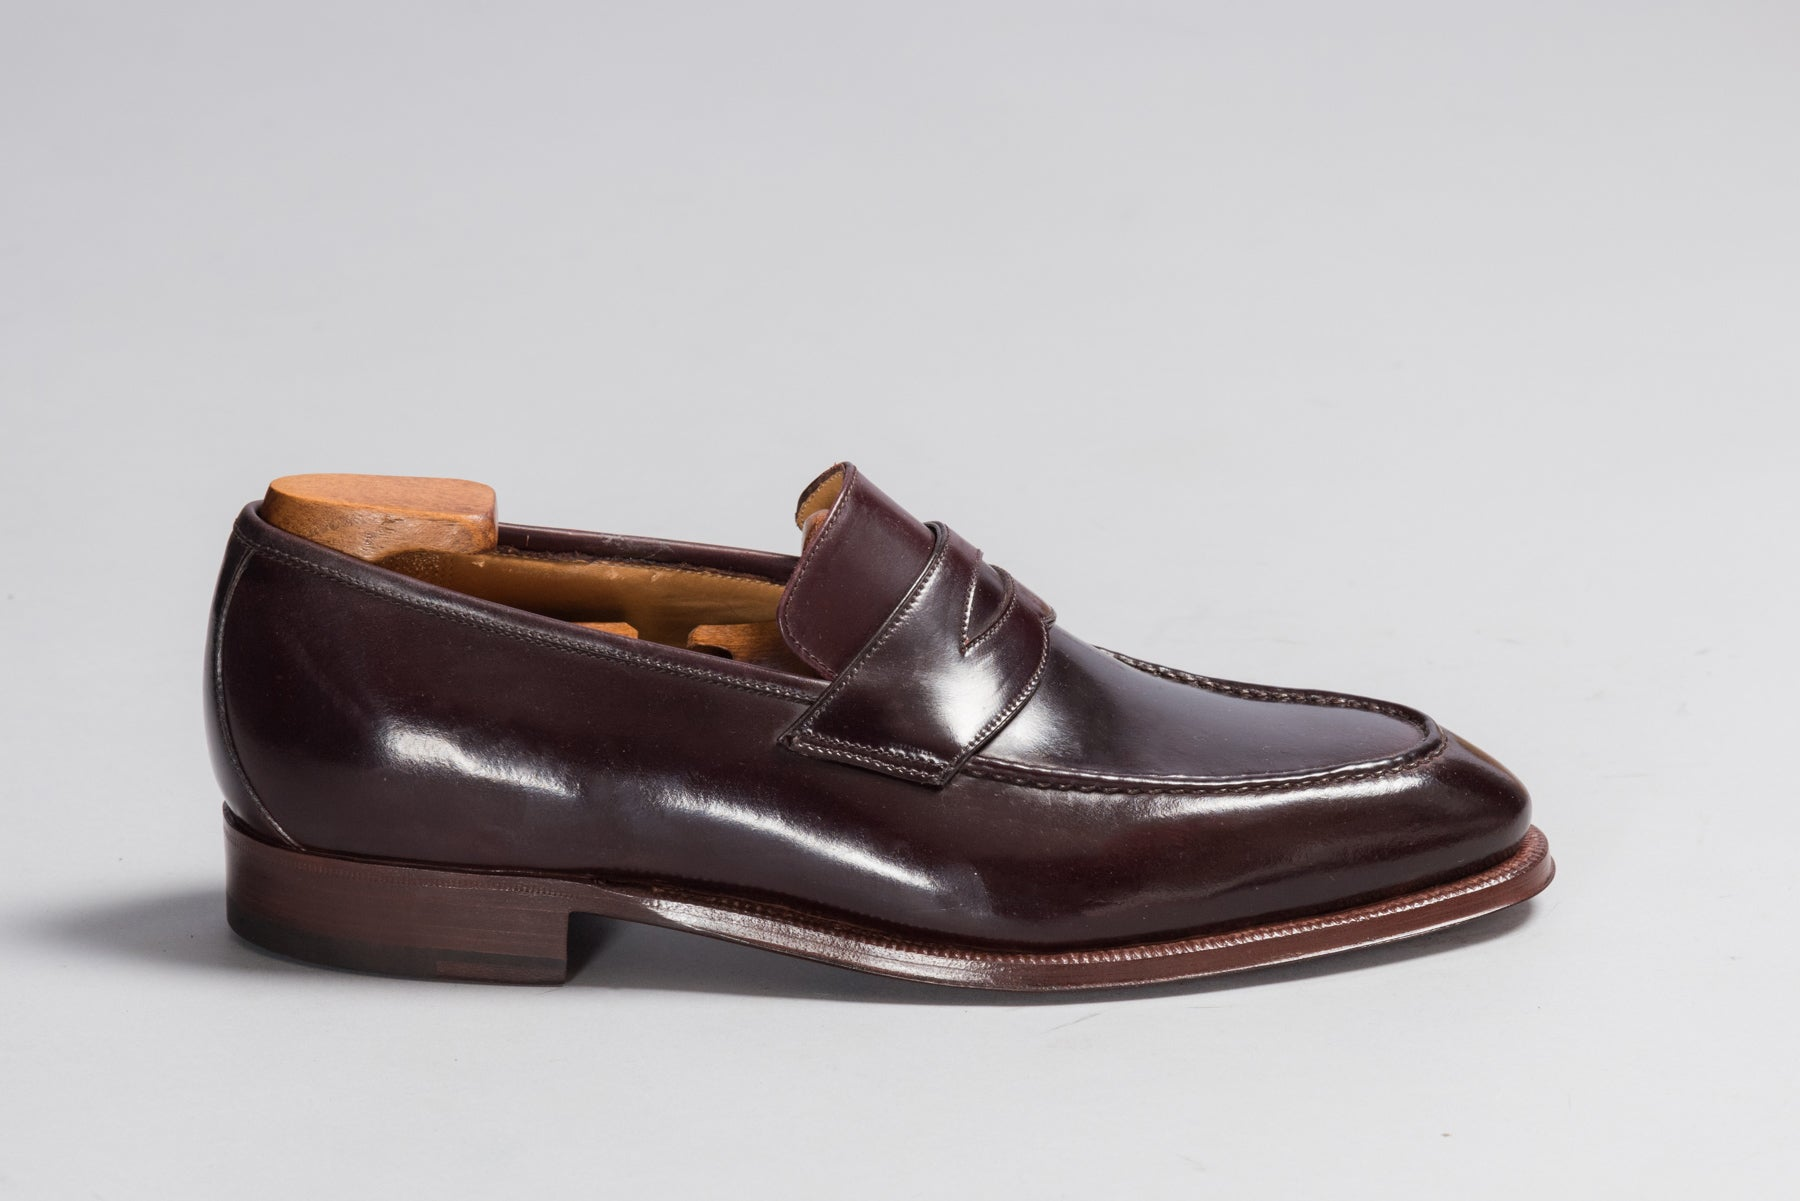 Enzo Bonafè Color 8 Cordovan Loafer